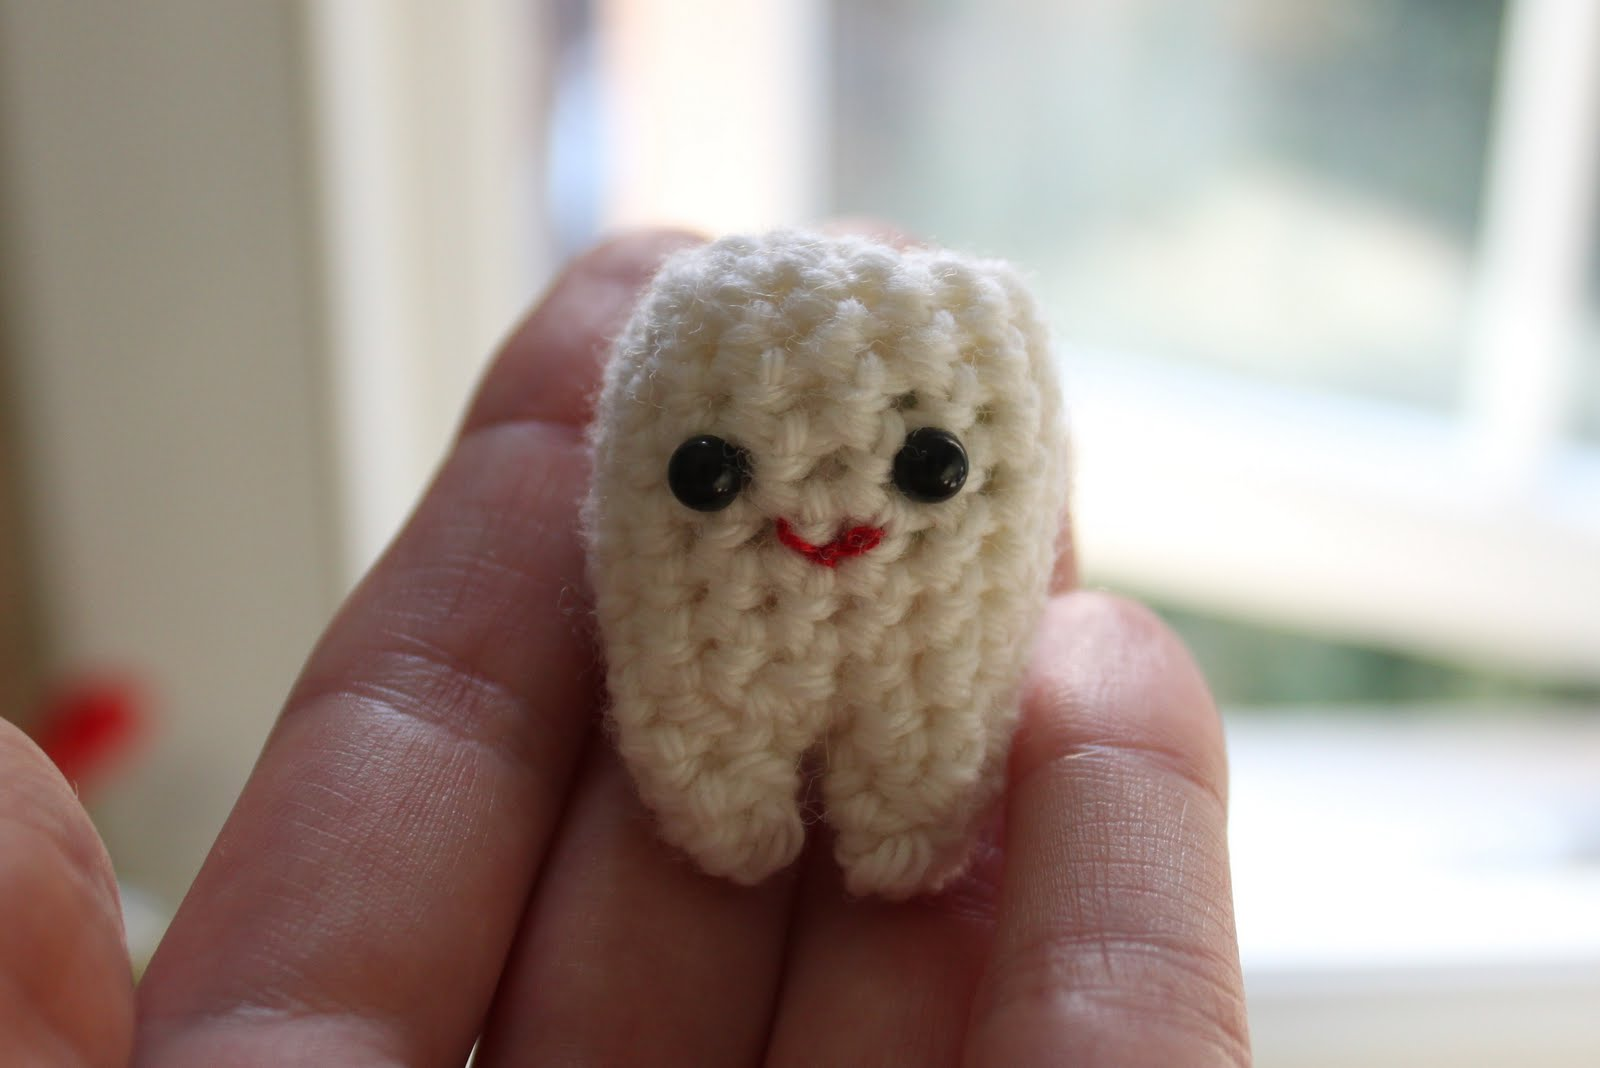 Amigurumi Tooth Smile Face Free Pattern (With images) | Crochet ... | 1068x1600